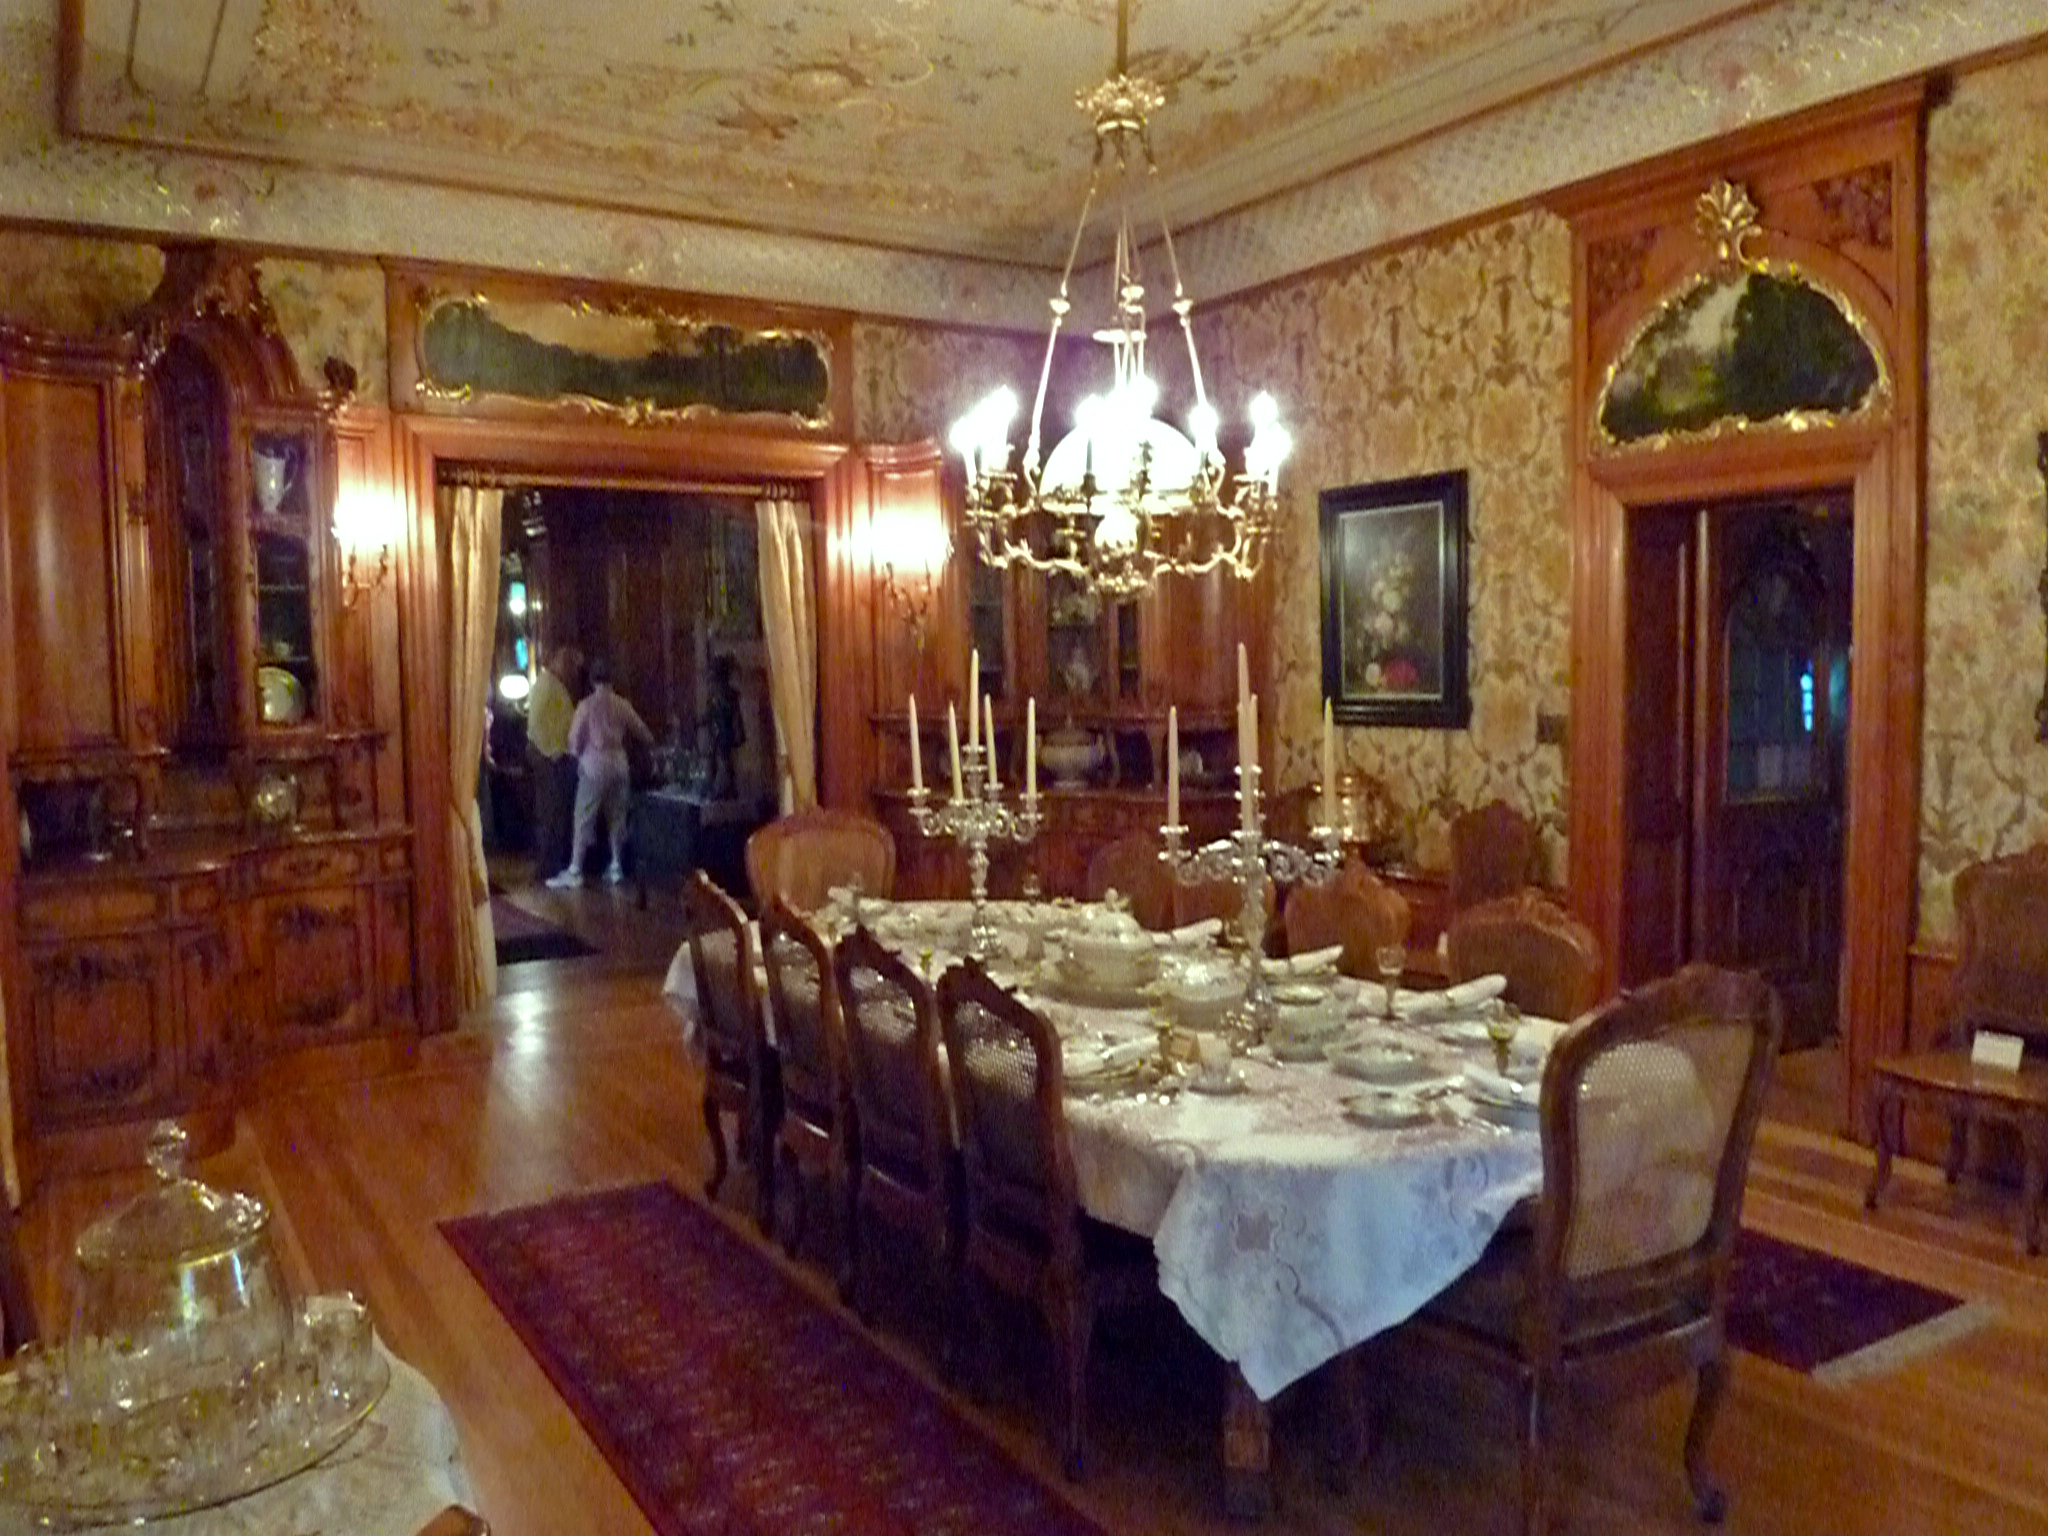 File:Dining room - Pabst Mansion.jpg - Wikimedia Commons